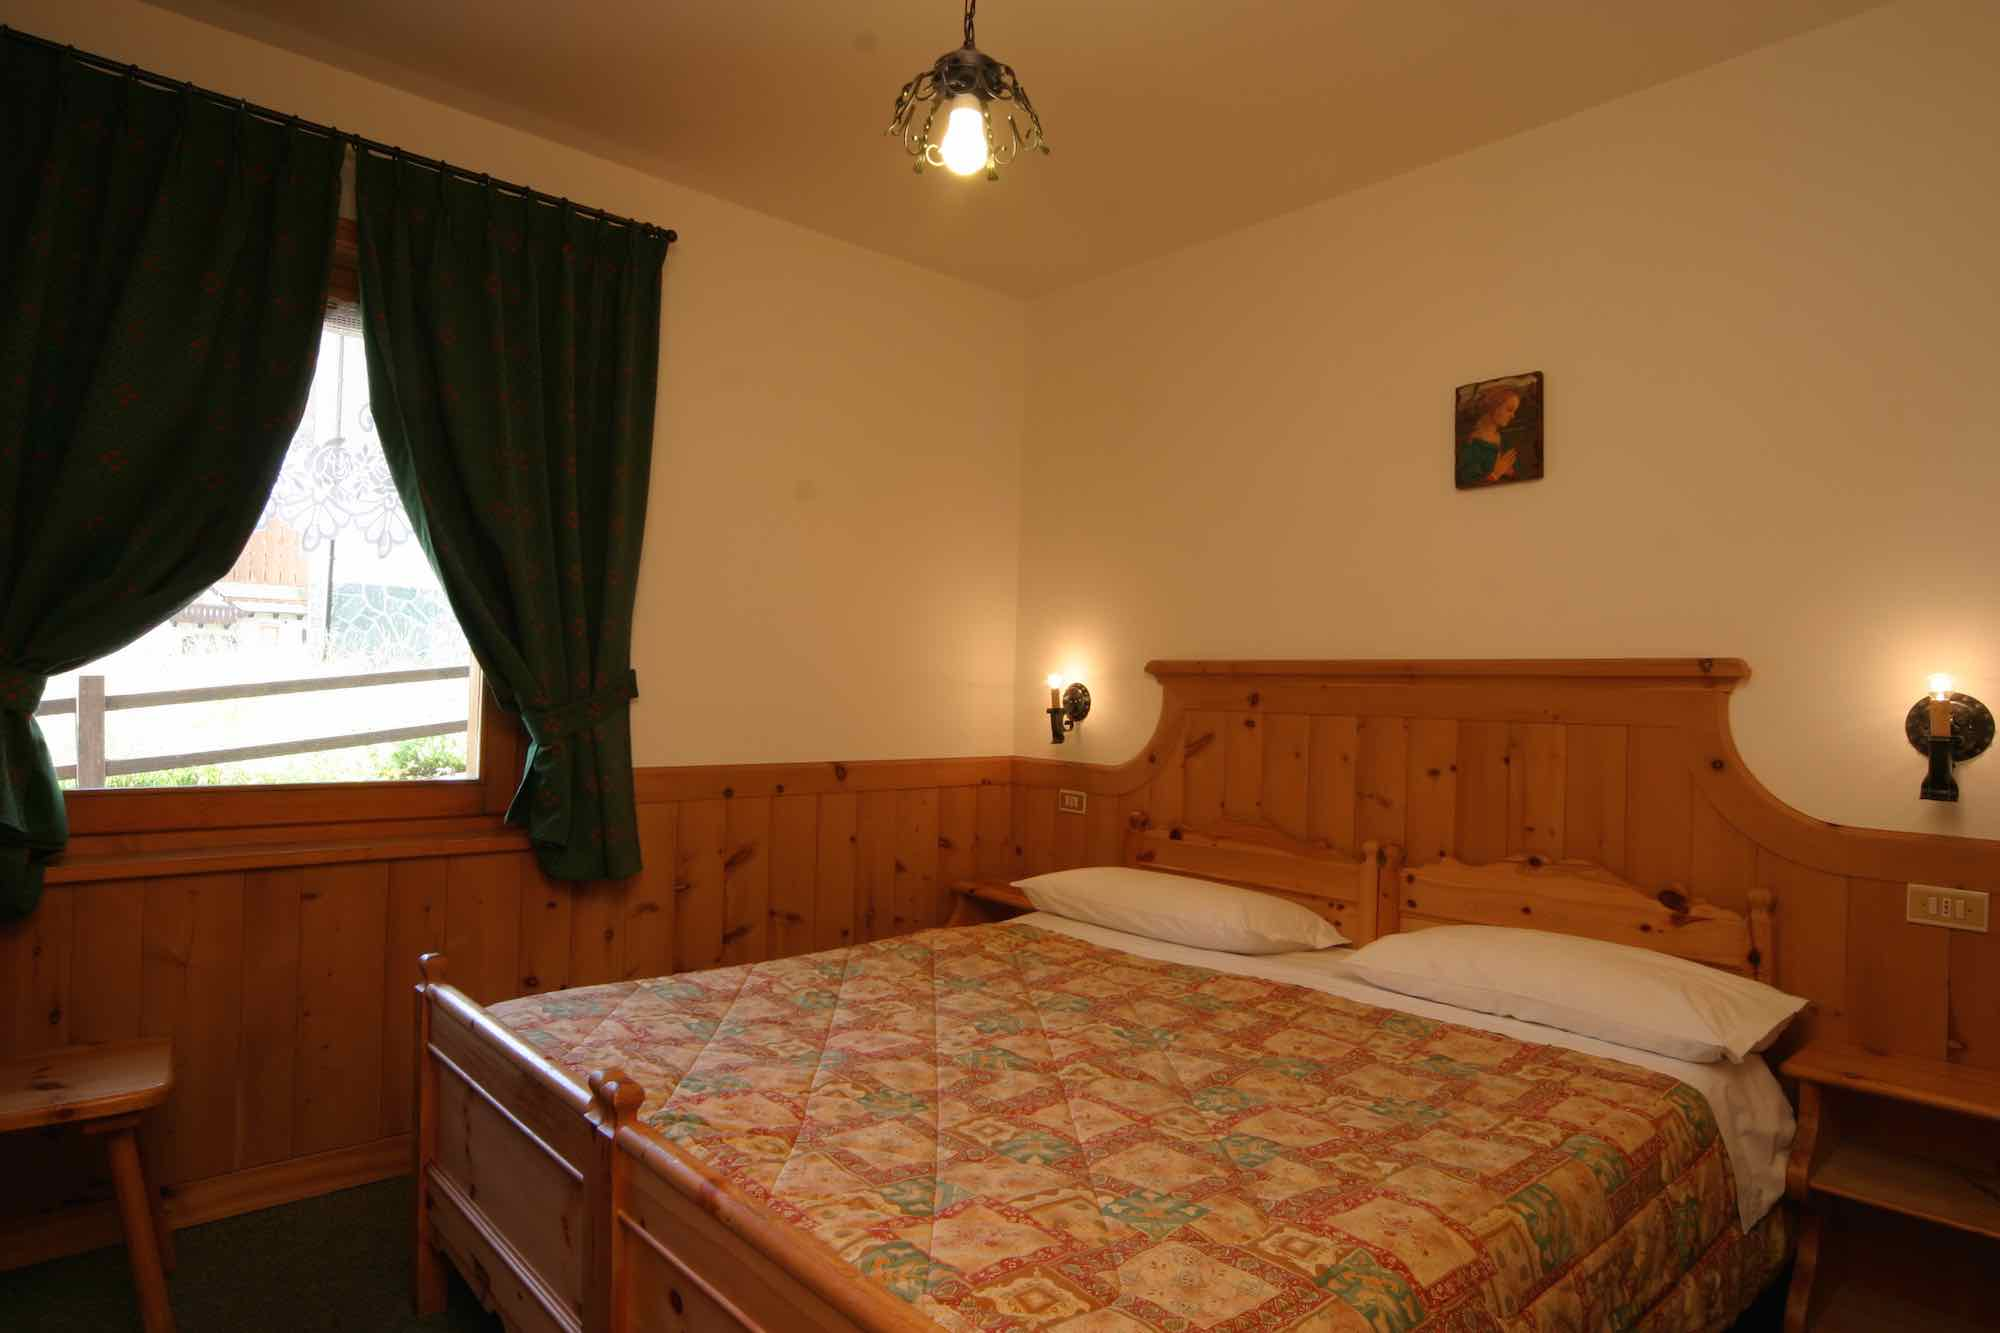 Bait da Borch - Via Saroch N.1430/f, Livigno 23041 - Apartment - Appartamento Eira 2